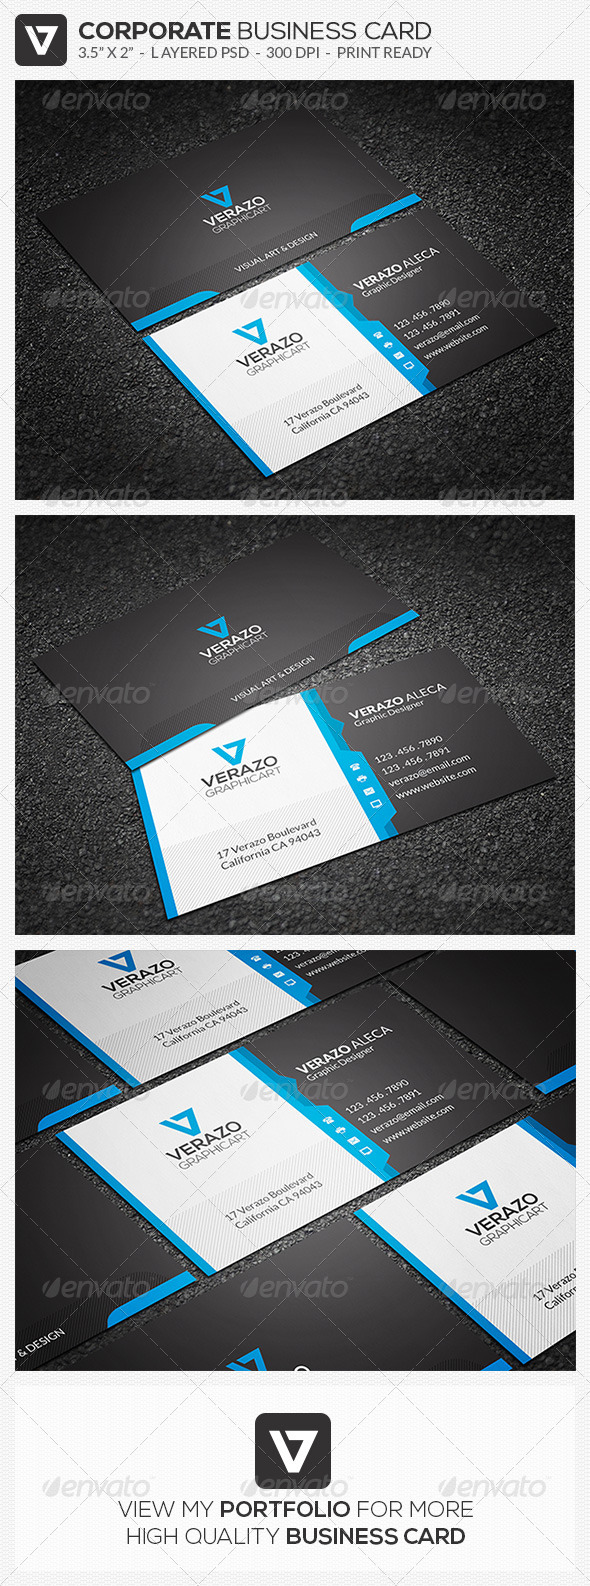 GraphicRiver Creative Corporate Business Card 45 8183184